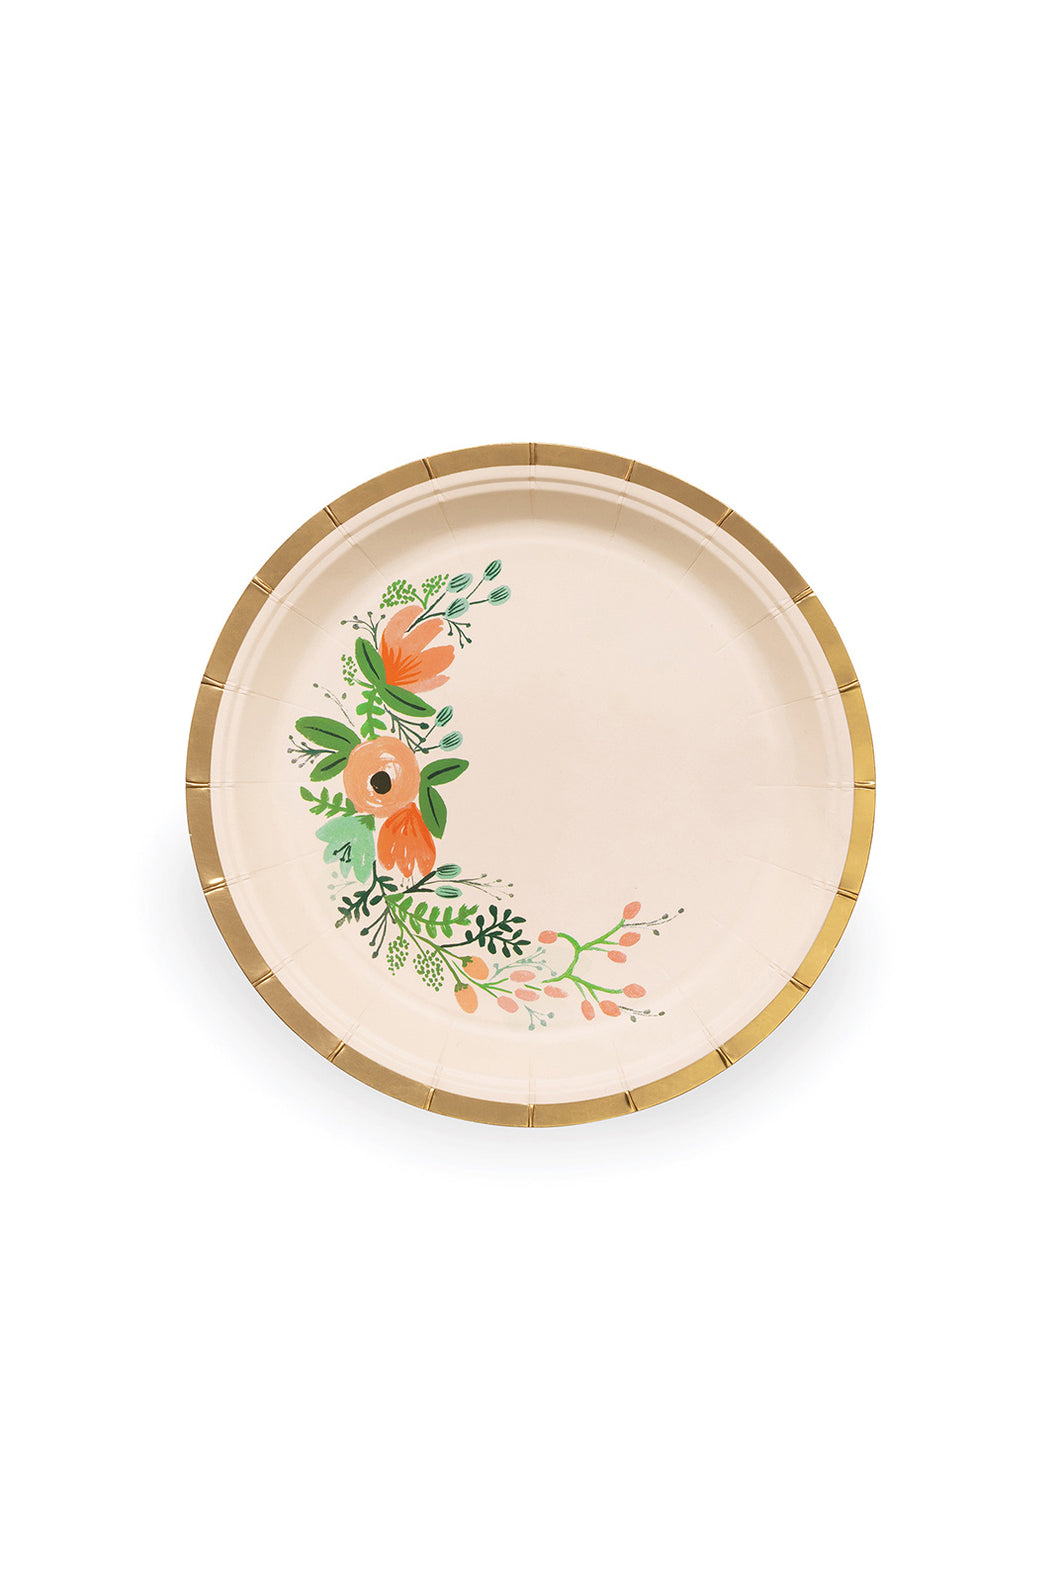 Rifle Paper Co - Paper Plates - Set of 10 - Small - Wild Rose